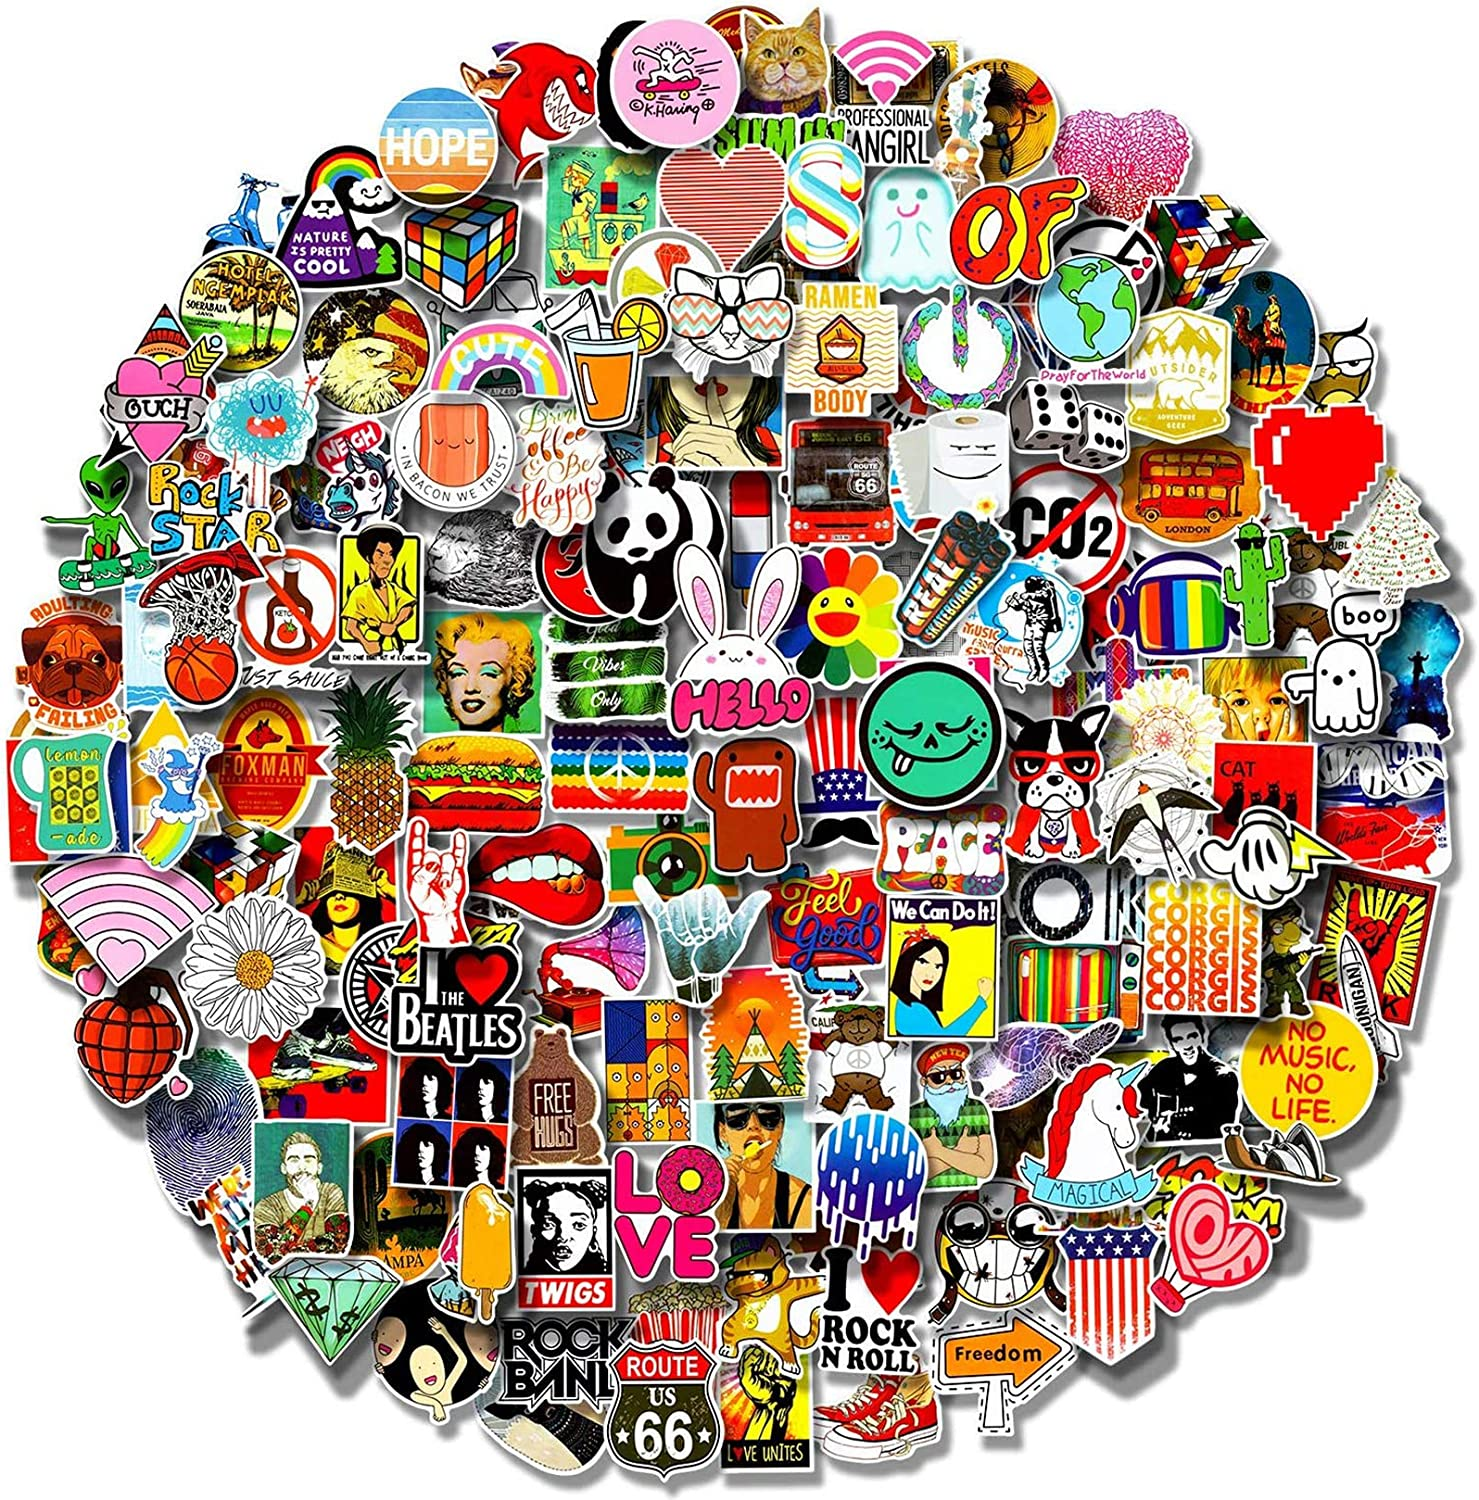 200 PCS Stickers Pack (5-500Pcs/Pack), Cool Waterproof Stickers for Flask, Water Bottle, Laptop, Phone, Aesthetic Vinyl Stickers for Children,Teens,Adults